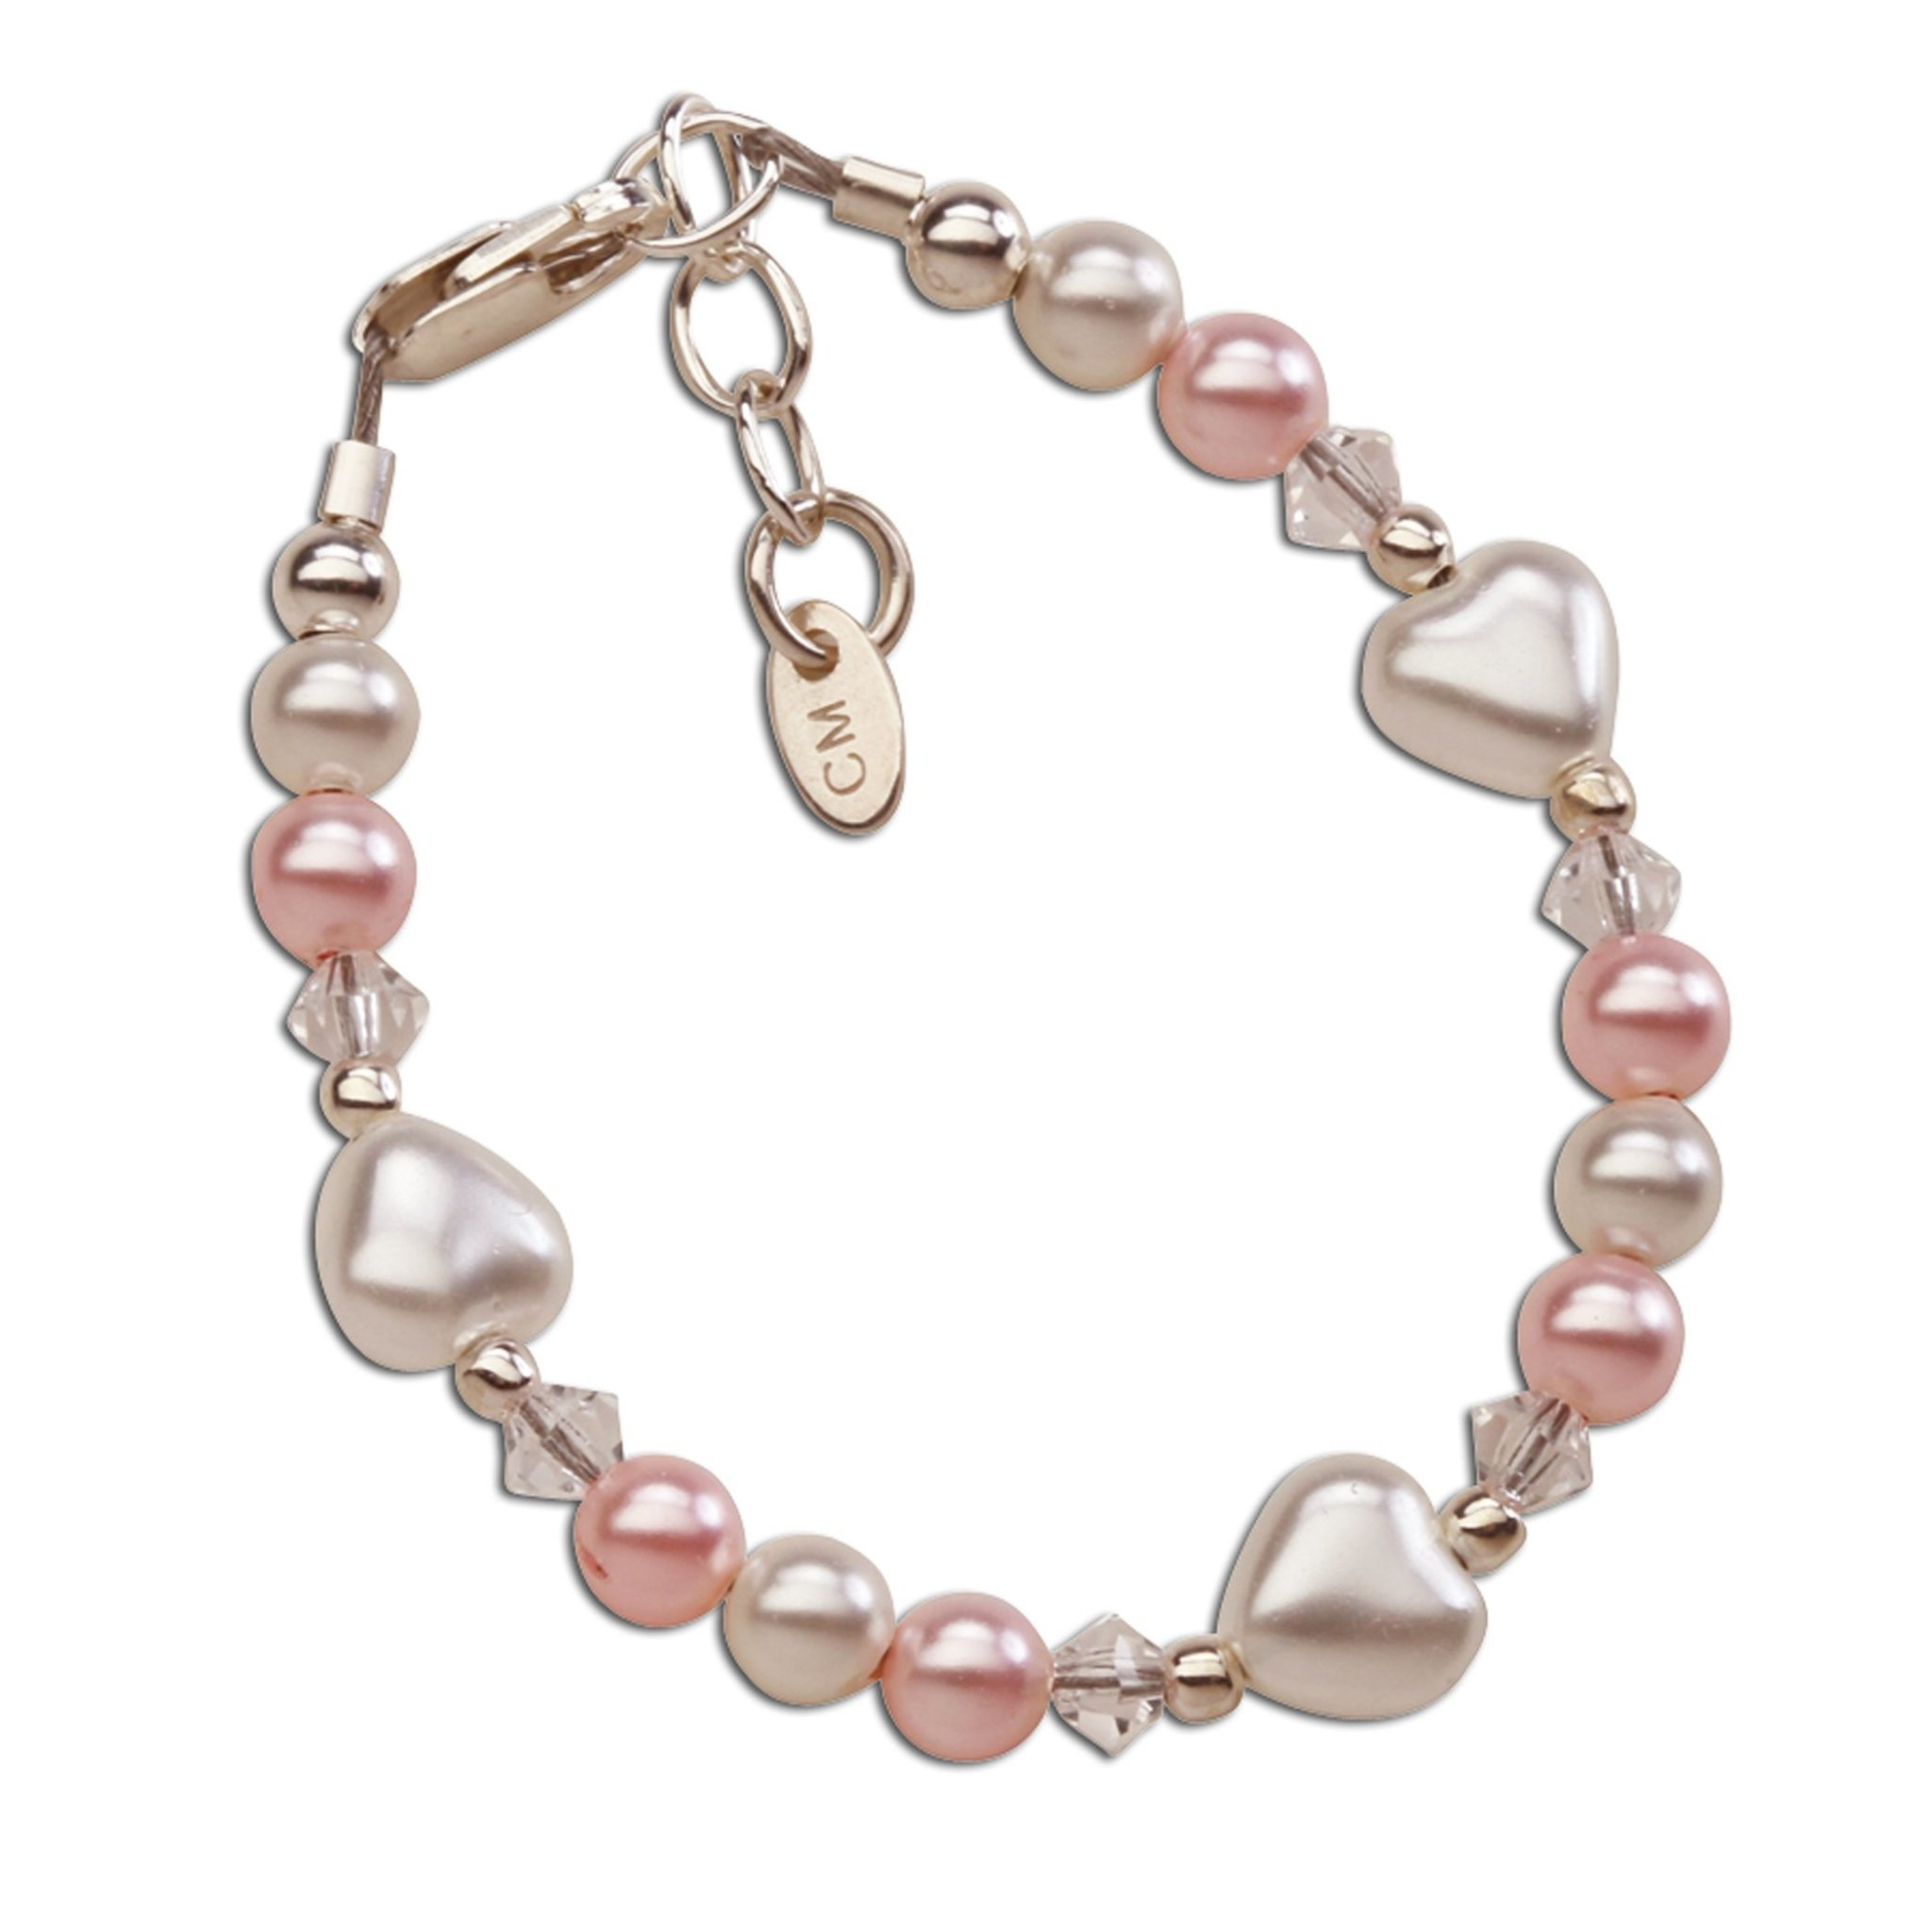 Sweetheart Bracelet - Sterling Silver with Pearl Hearts